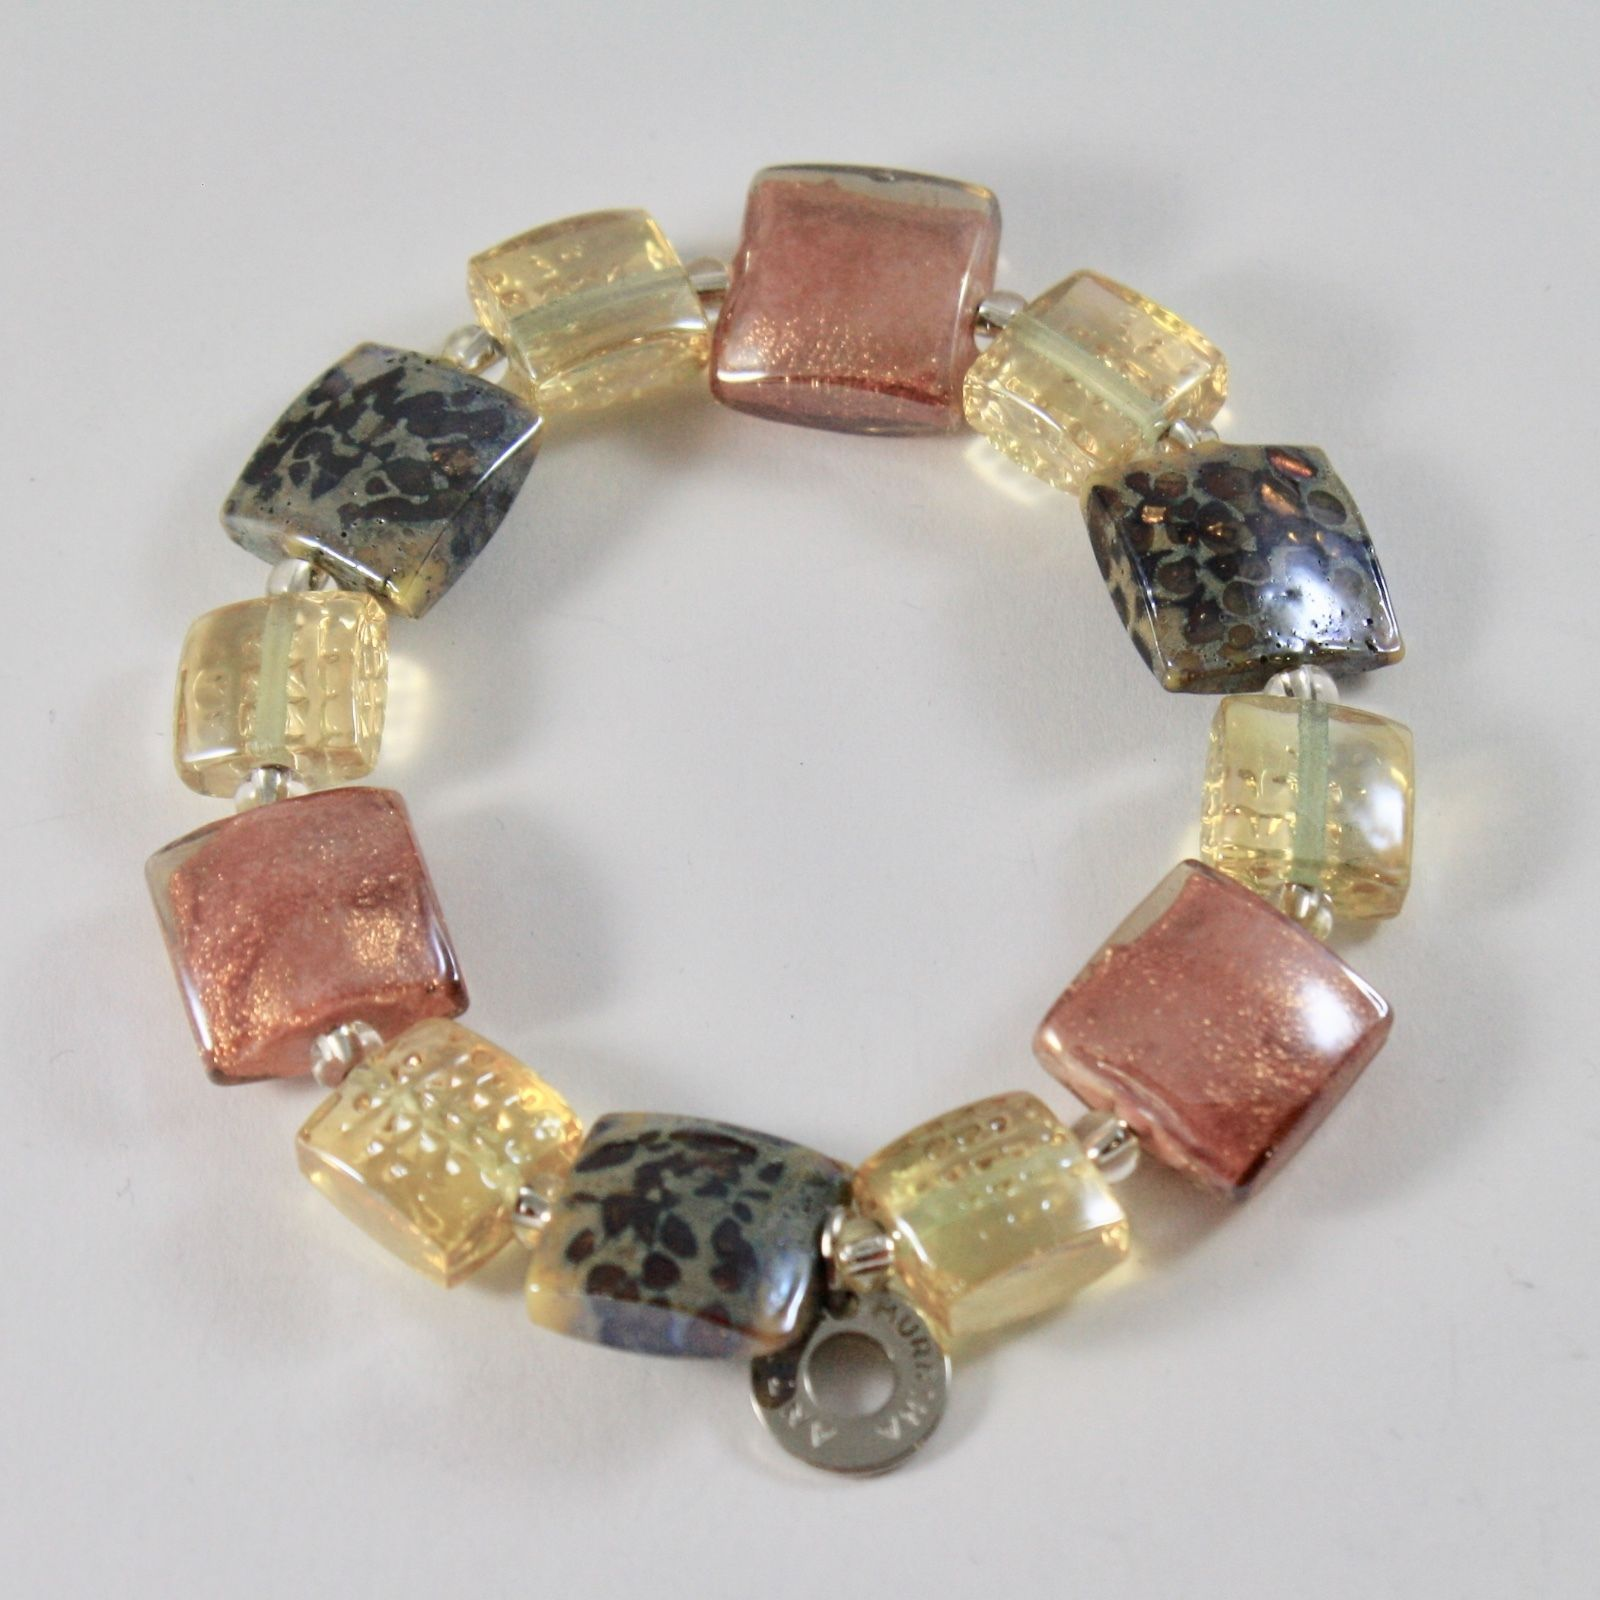 ANTICA MURRINA VENEZIA BRACELET WITH MULTICOLOR MURANO GLASS SQUARES, ORANGE